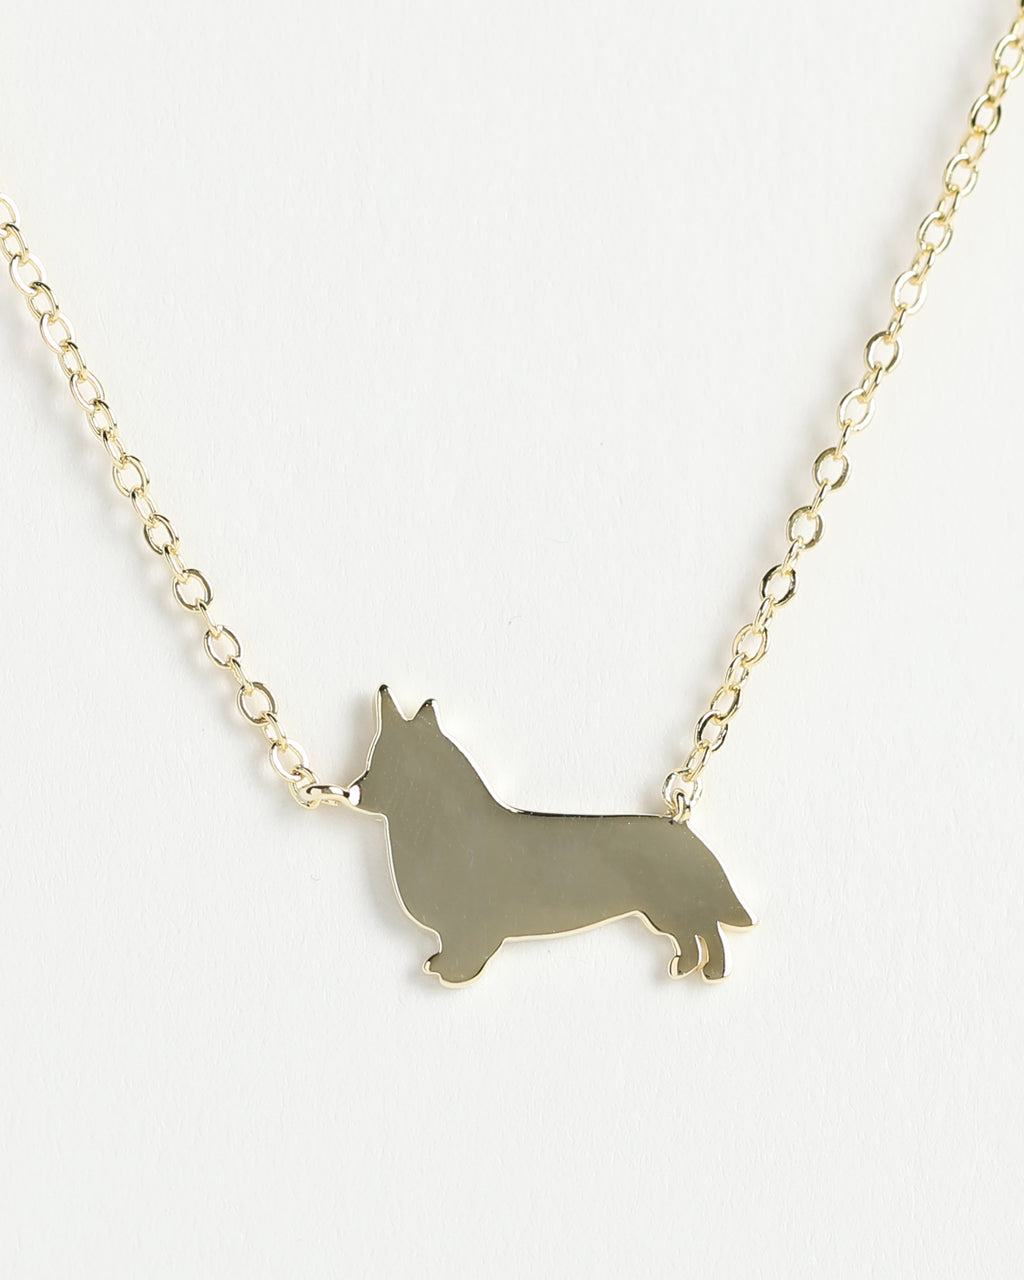 CORGI Delicate Necklace